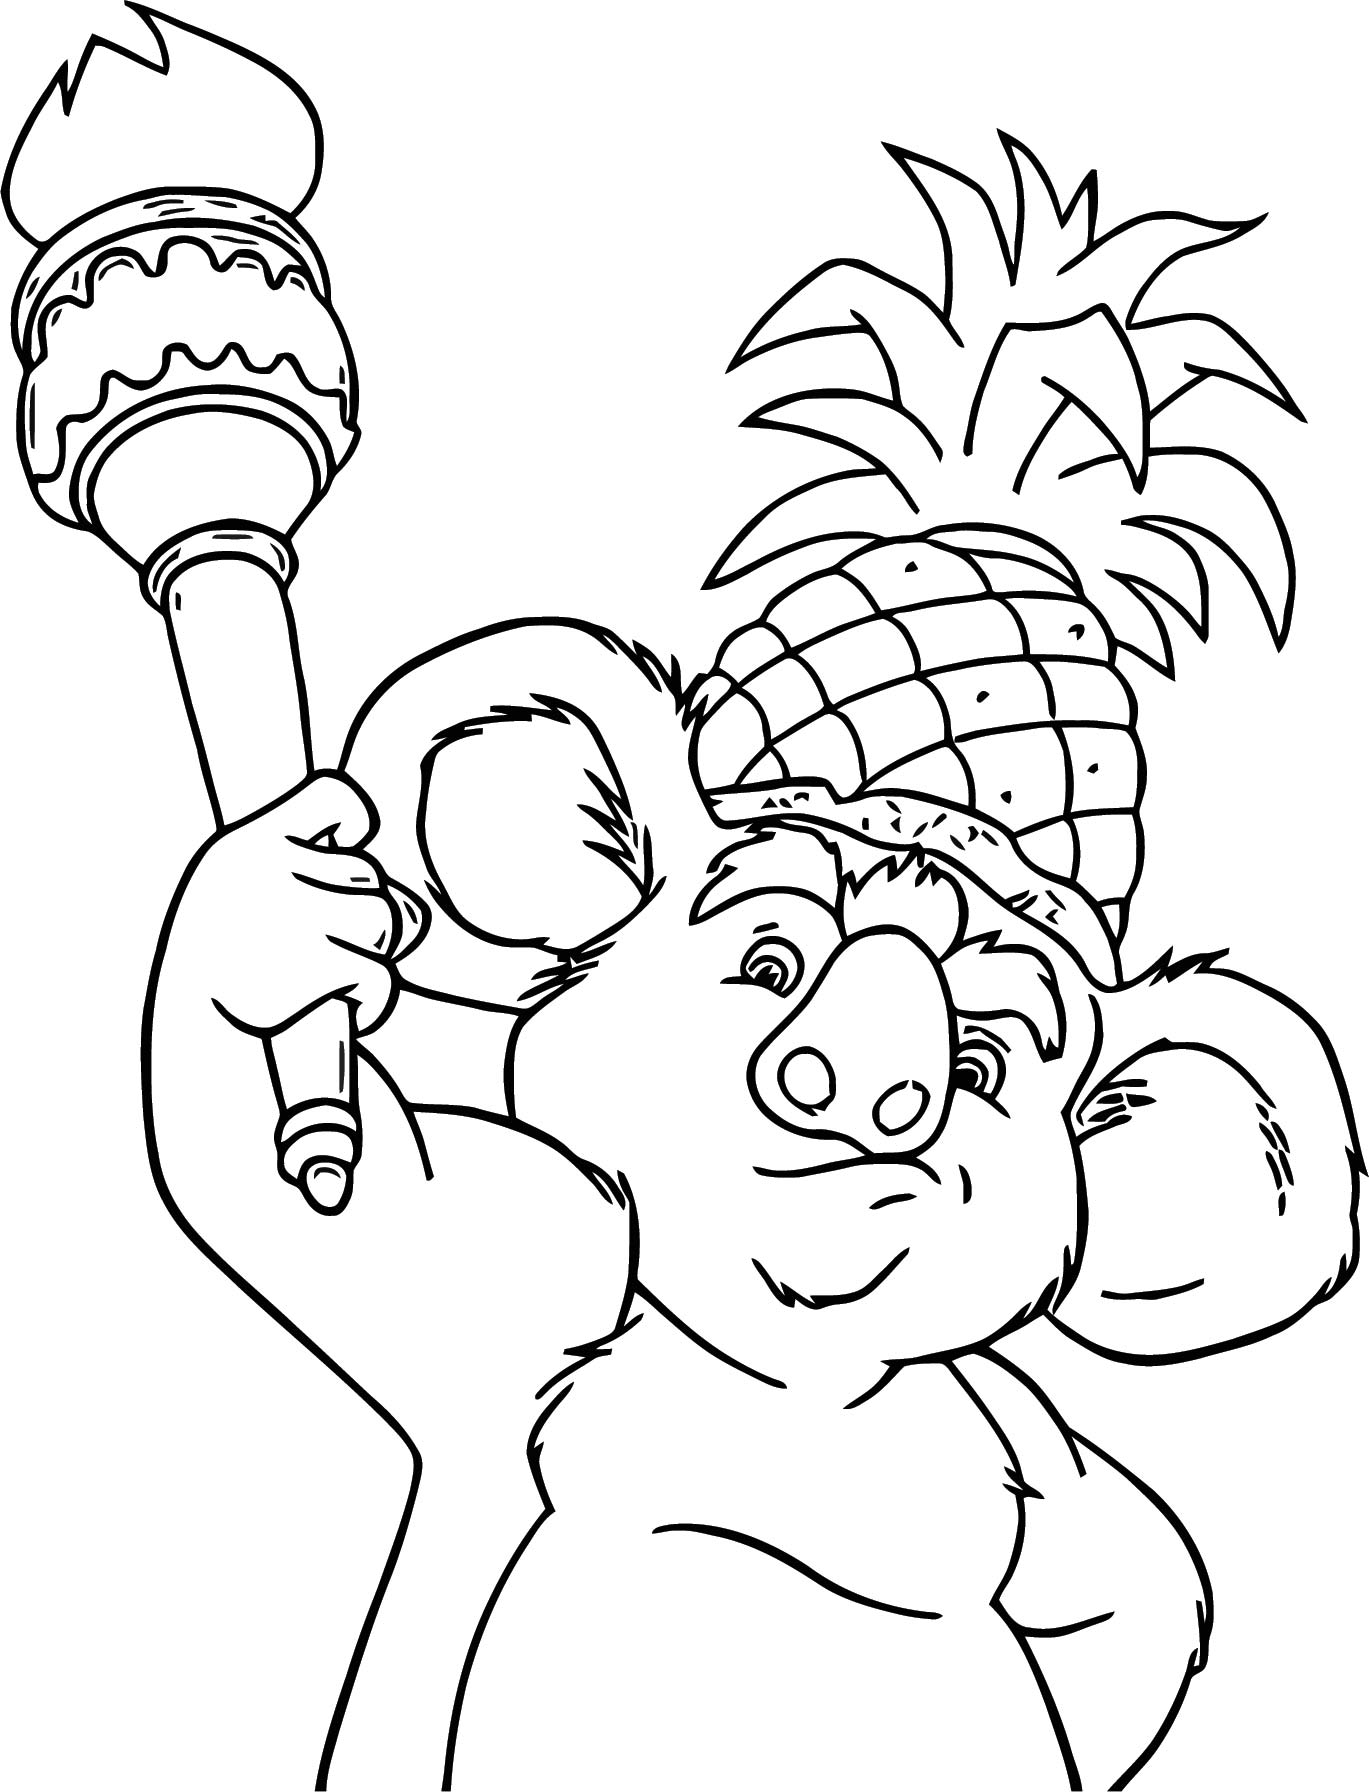 Disney The Wild Coloring Pages 13